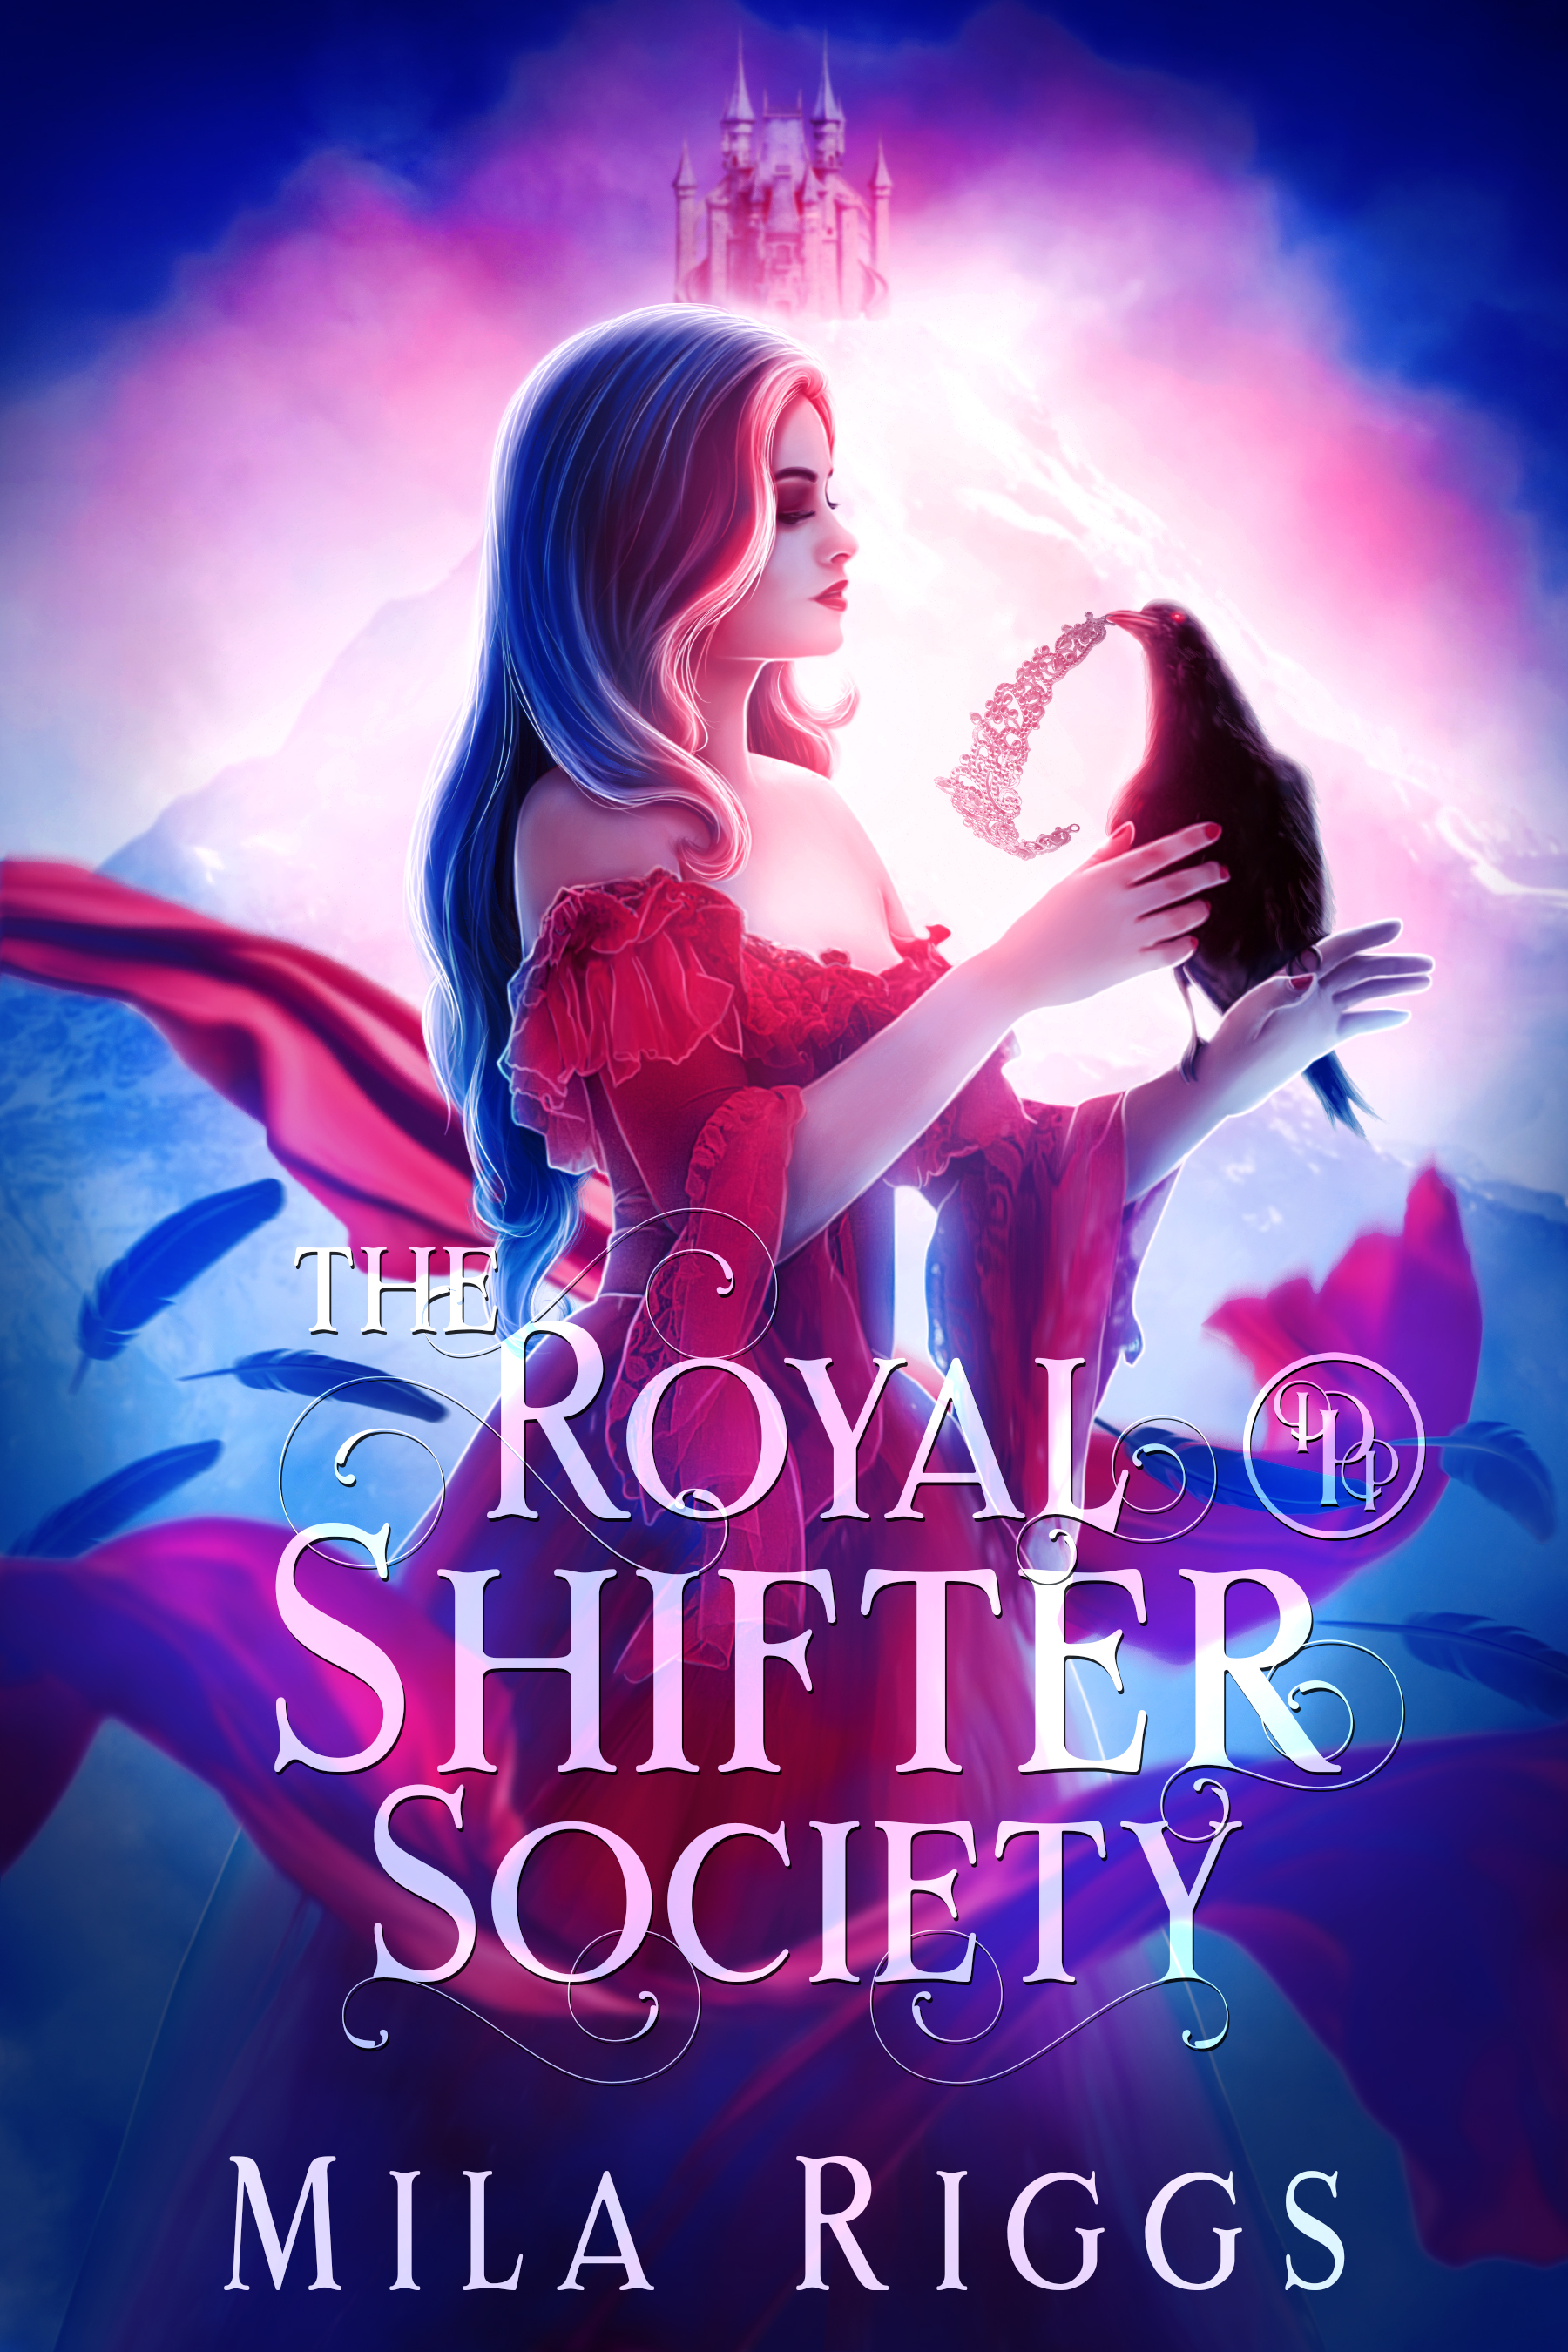 Royal Shifter Society